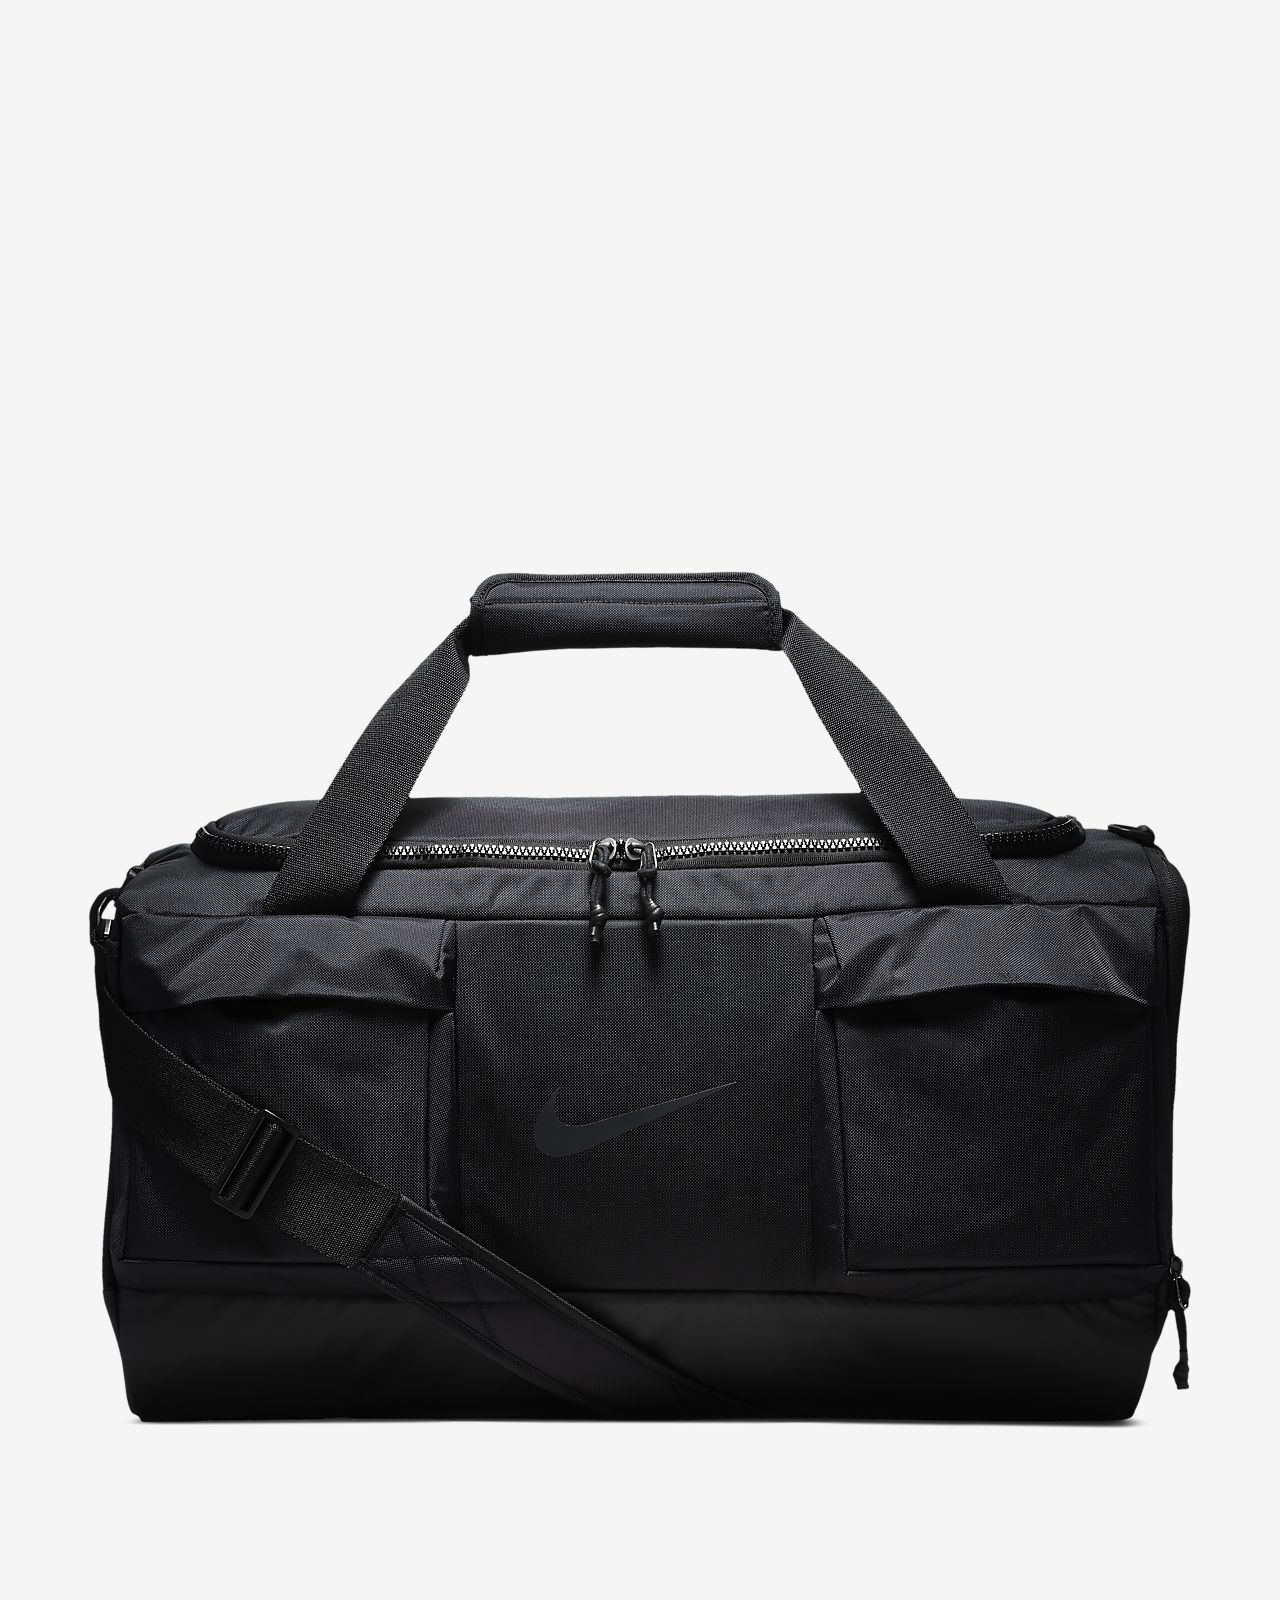 Nike Vapor Power Men s Training Duffel Bag (Medium). Nike.com SG 052b17c1716bb